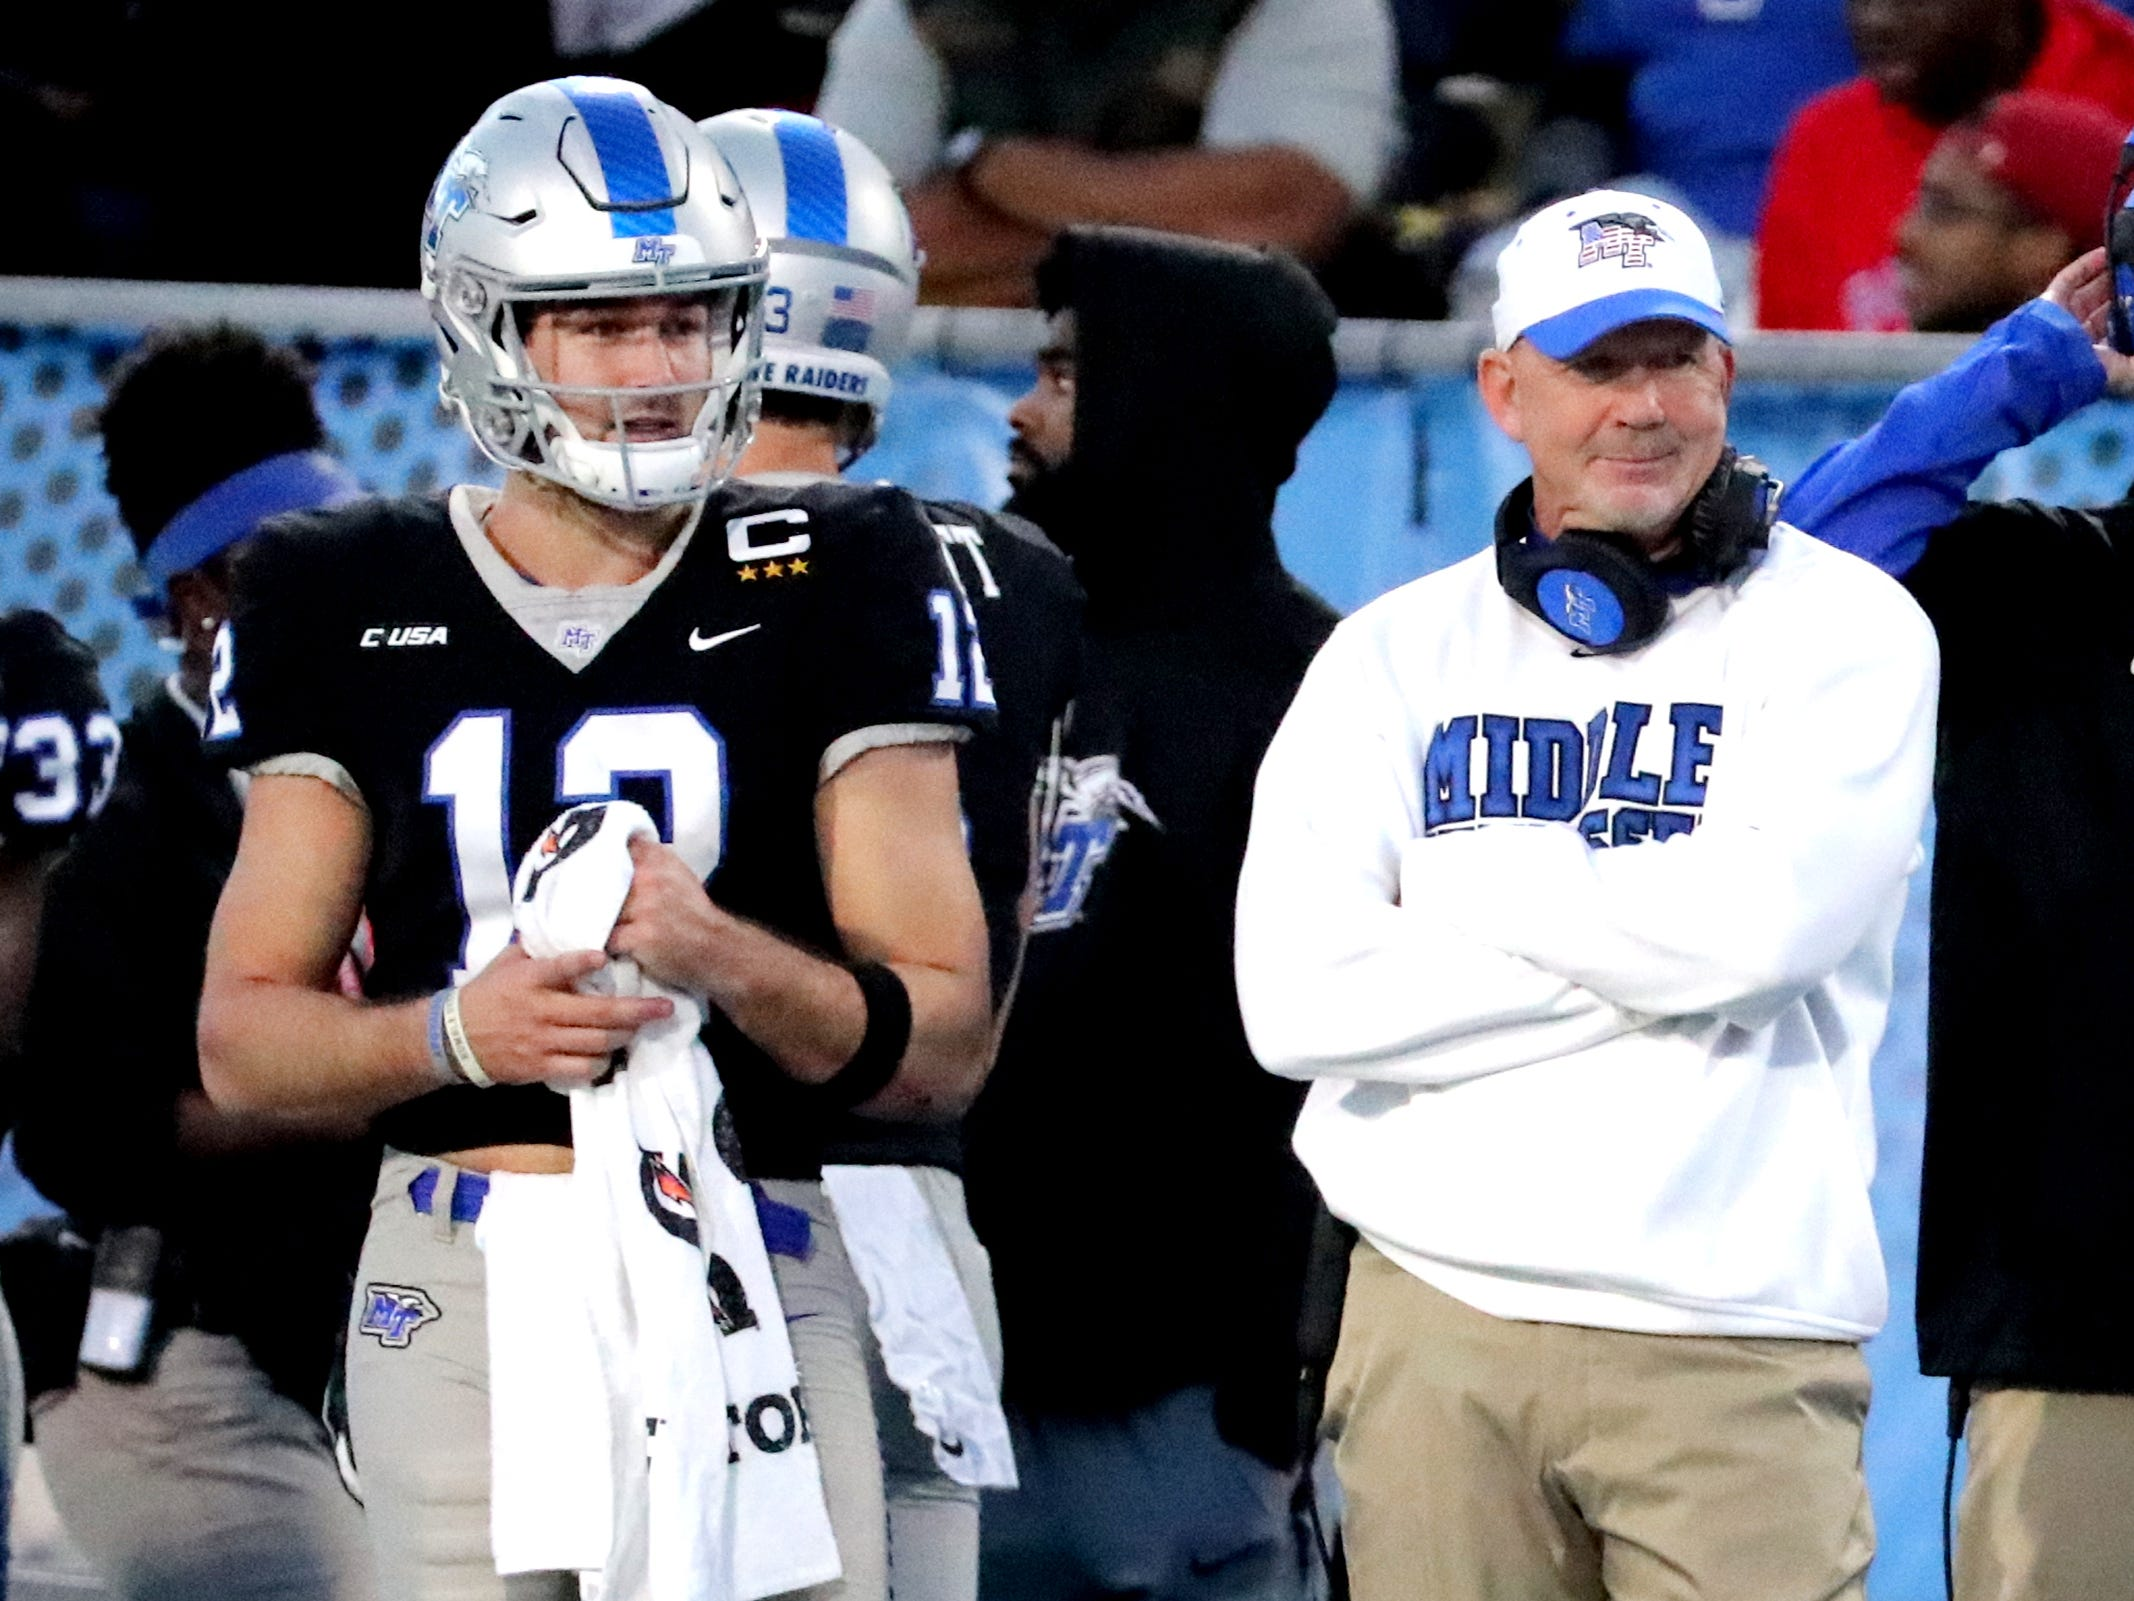 MTSU's quarterback Brent Stockstill and head coach Rick Stockstill on the sidelines during the game against UAB at MTSU on Saturday, Nov. 24, 2018.